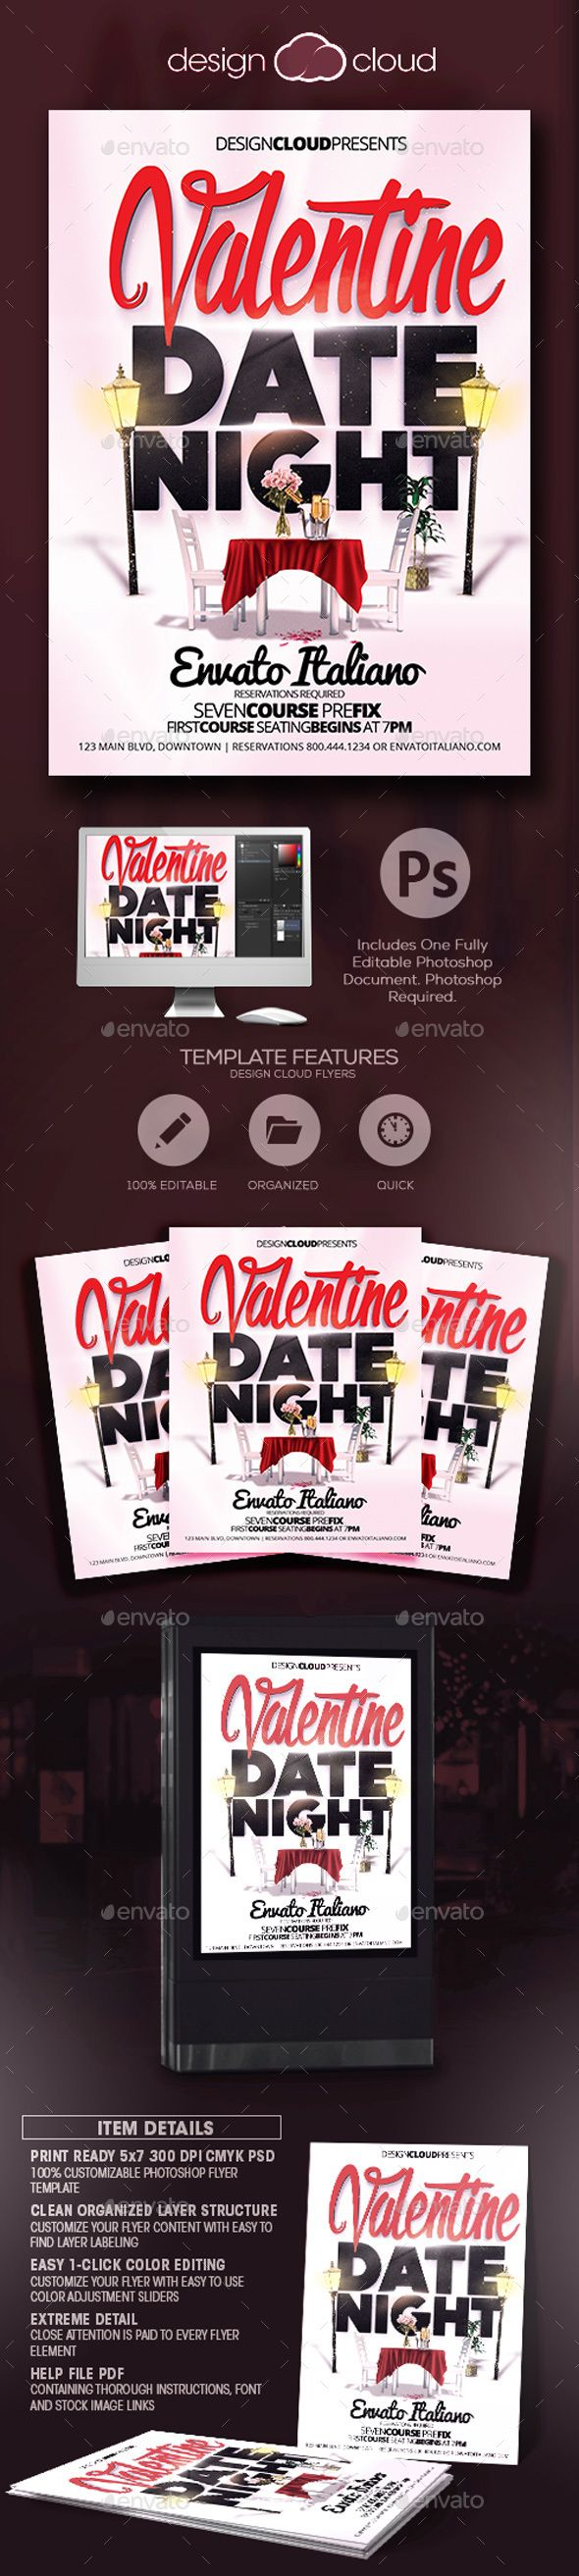 Valentine Date Night Flyer Template This Fully Editable Flyer